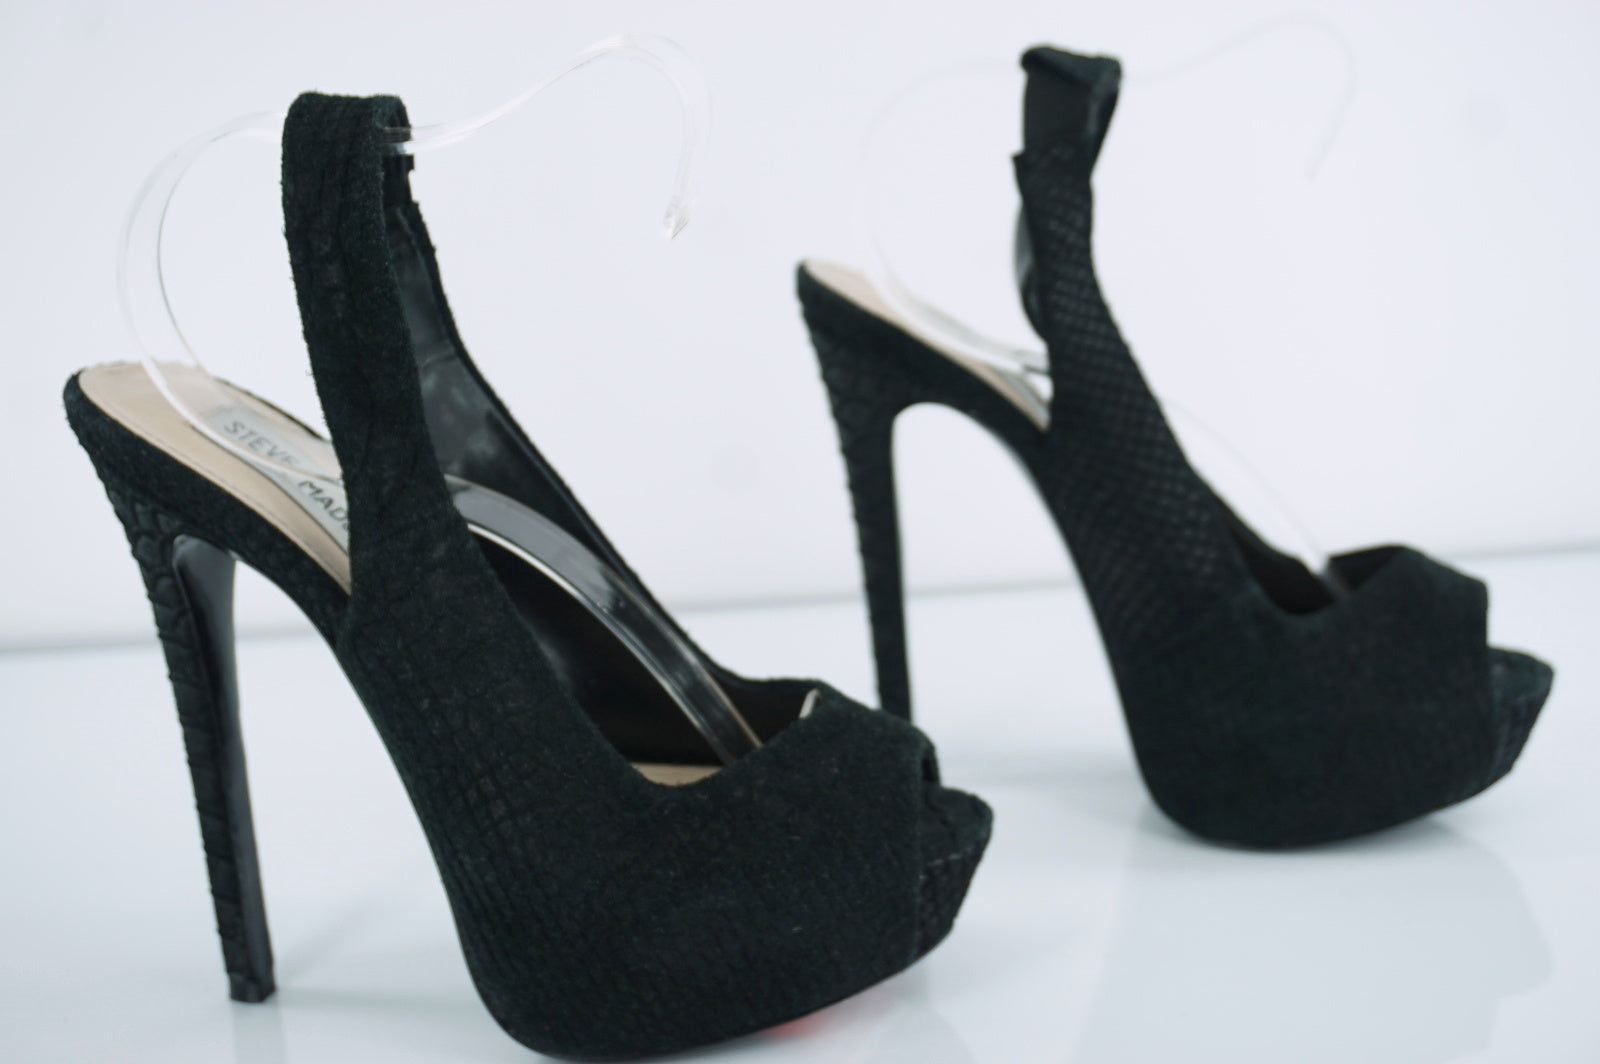 Steve Madden Adin Black Textured Suede Peep Toe Platform Pumps Size 6.5 New $100